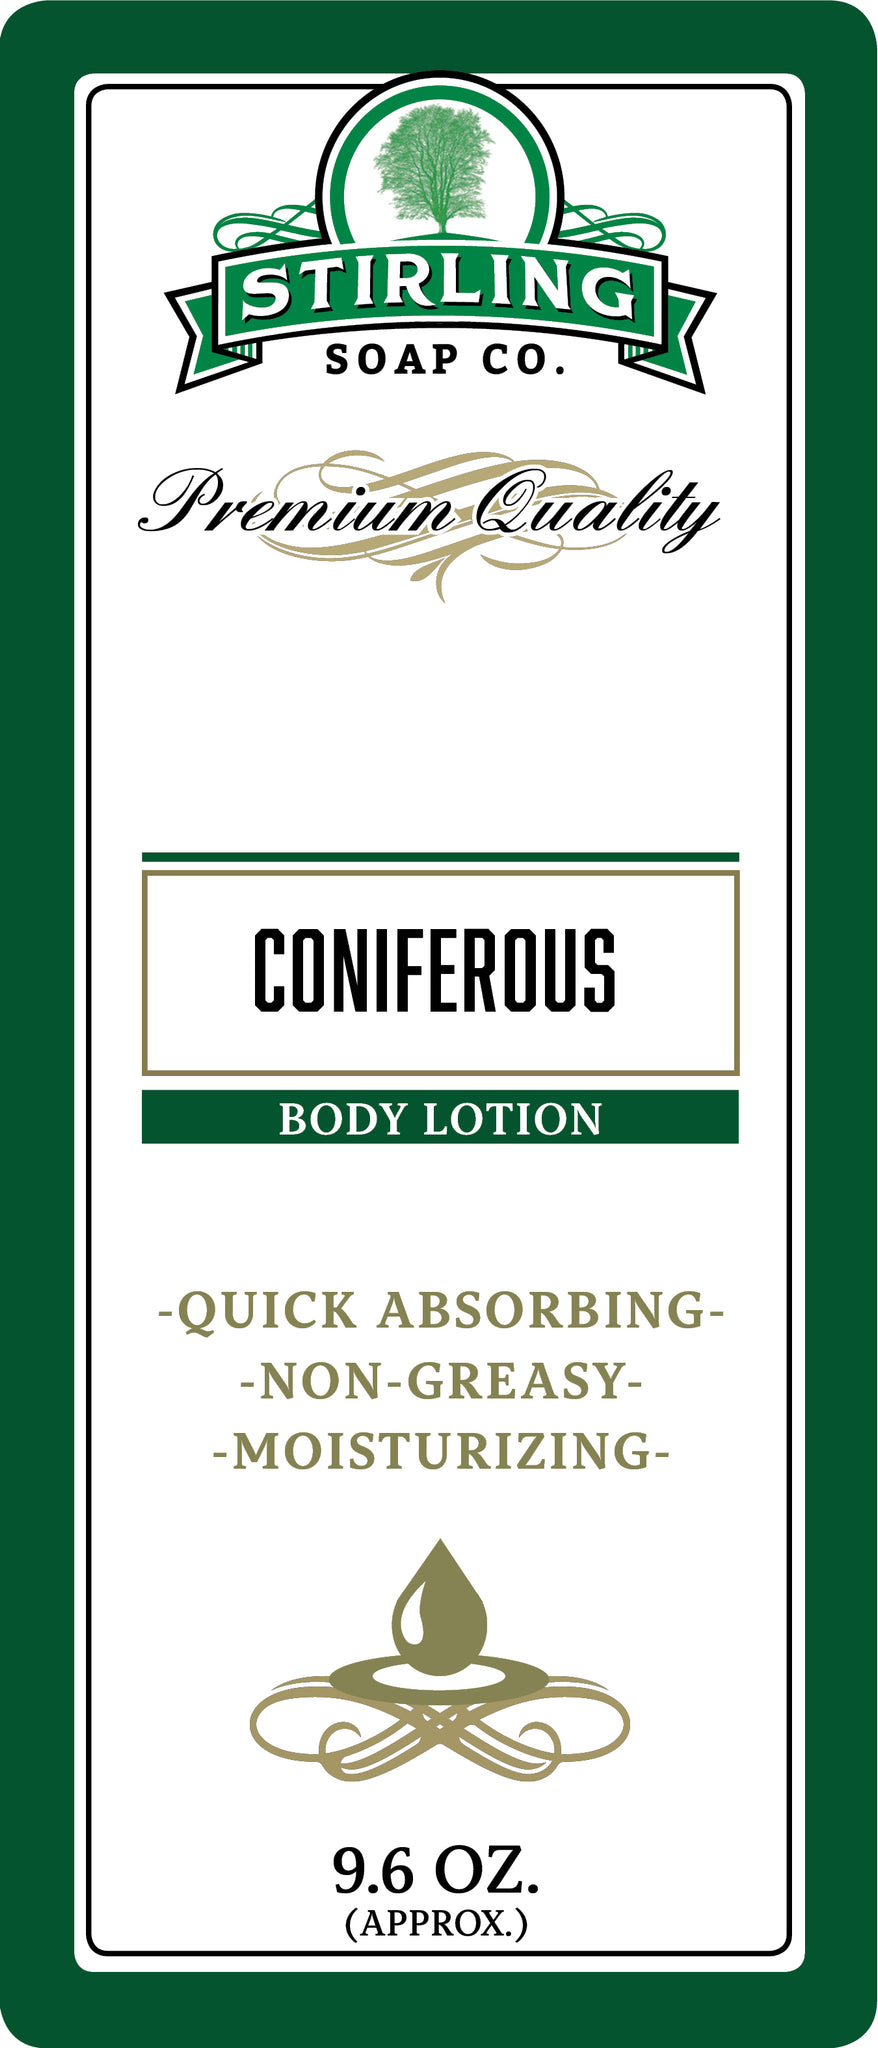 Coniferous - Body Lotion